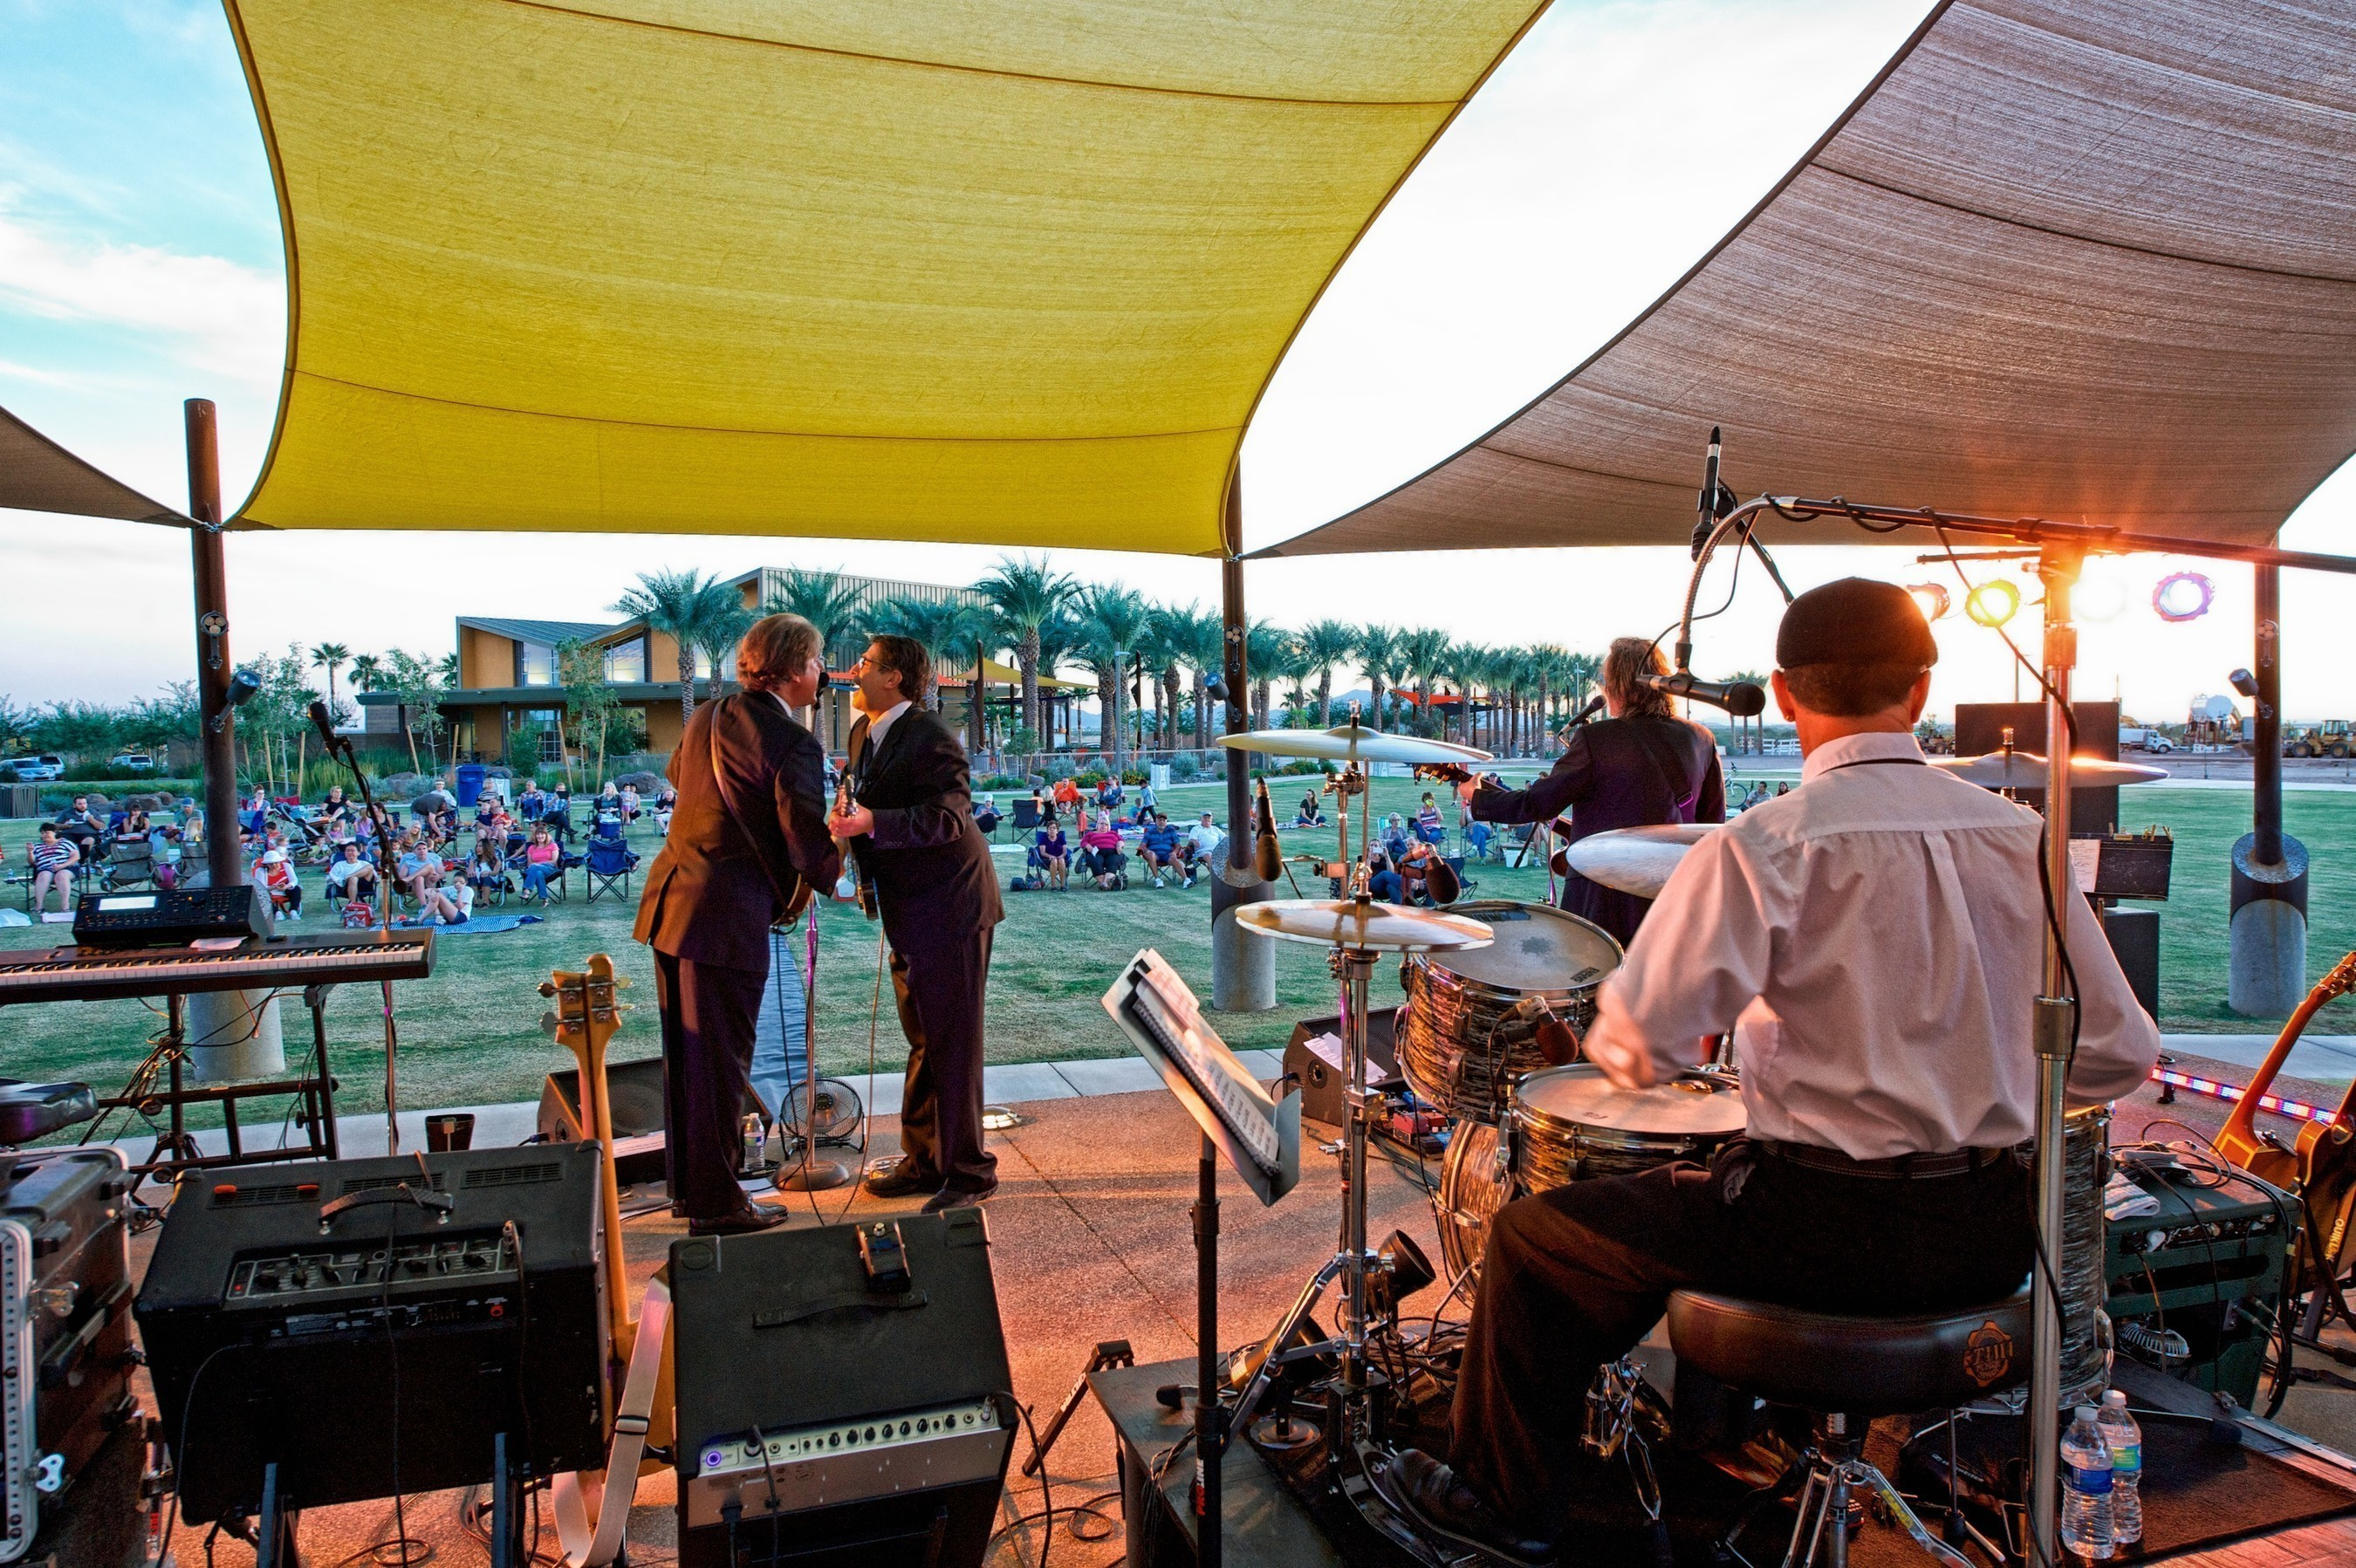 Eastmark's outdoor concert series is one of the more than 100 events and programs residents and surrounding Southeast Valley communities enjoy every year at Eastmark in Mesa, Ariz., ranked the 7th and 8th top-selling master-planned community in the nation for 2015.